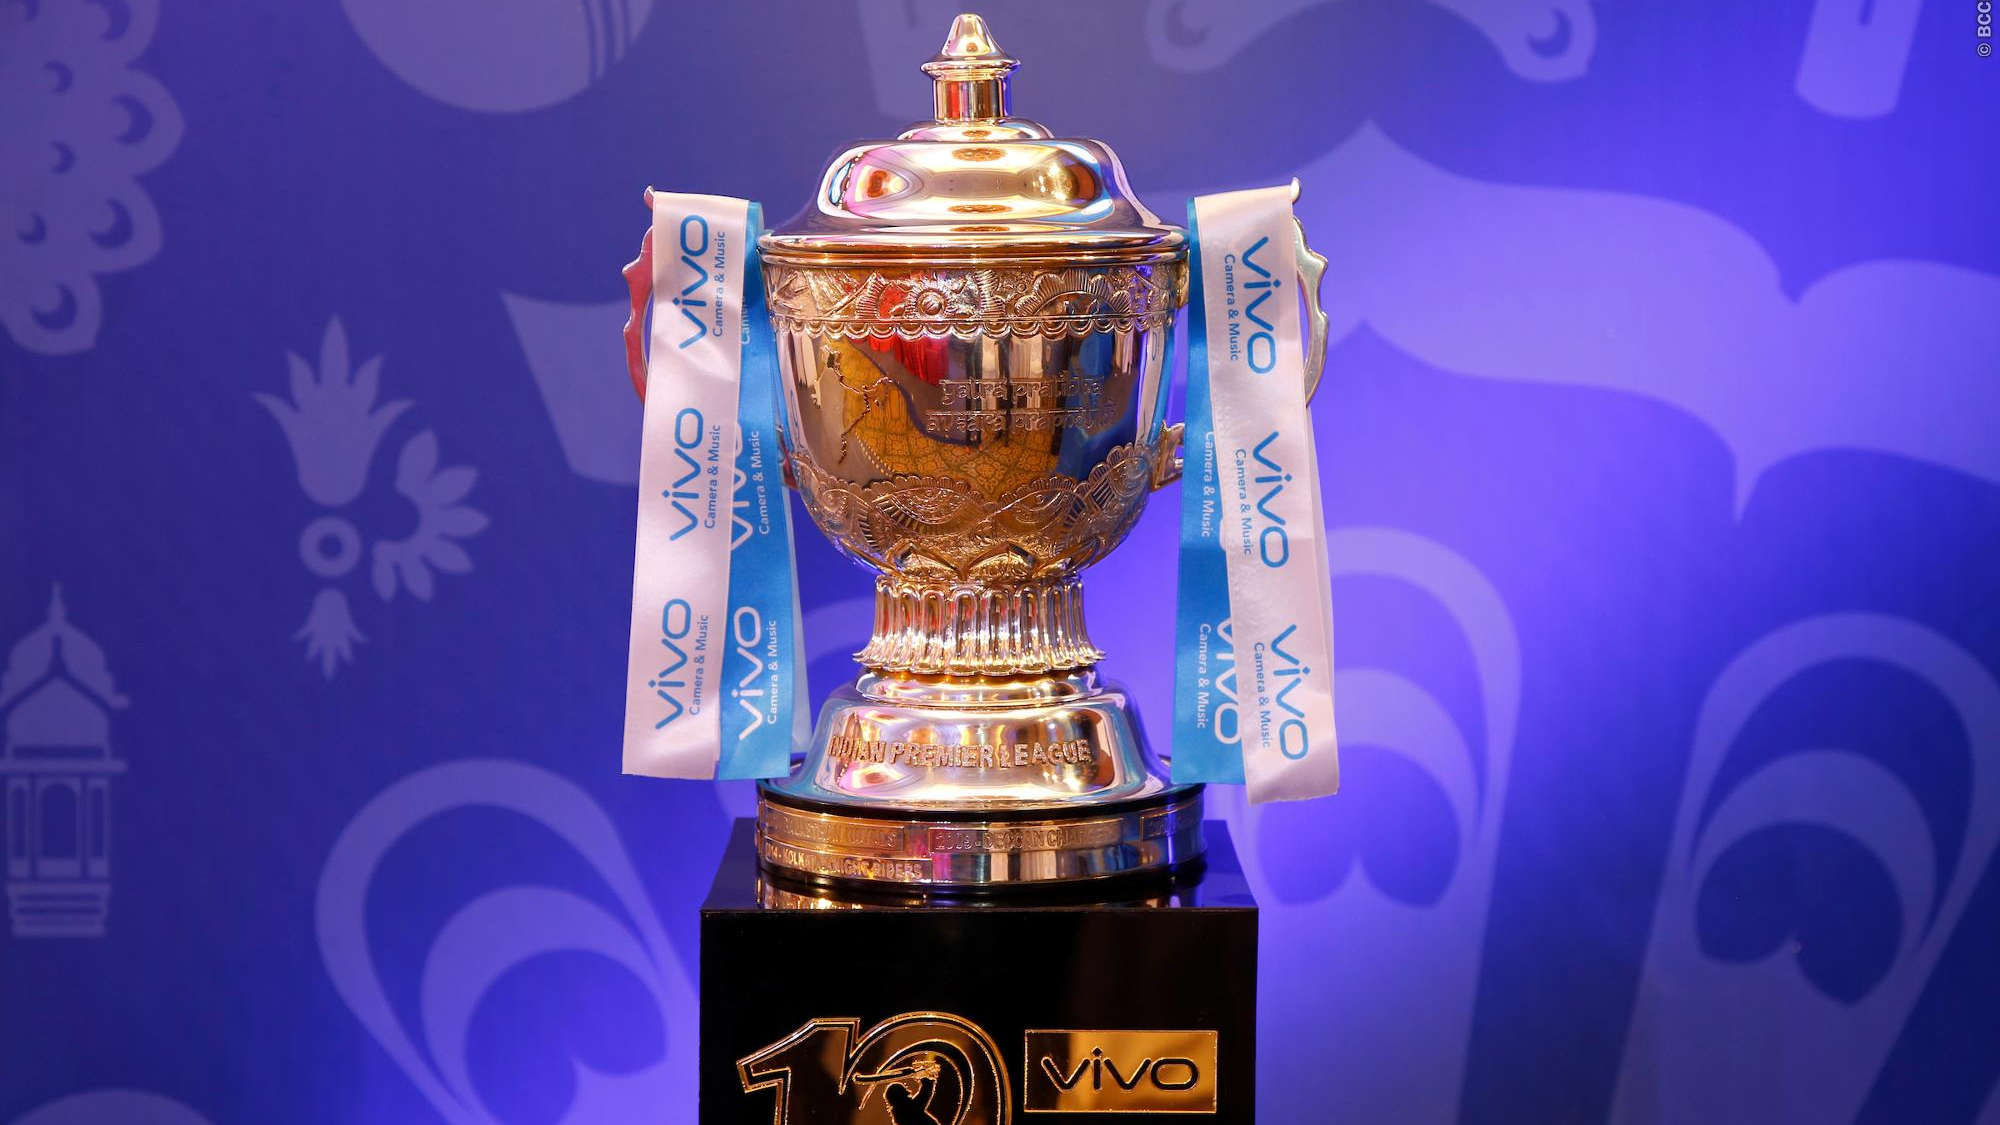 IPL 2018: IPL franchises to receive 24% more share from BCCI revenue